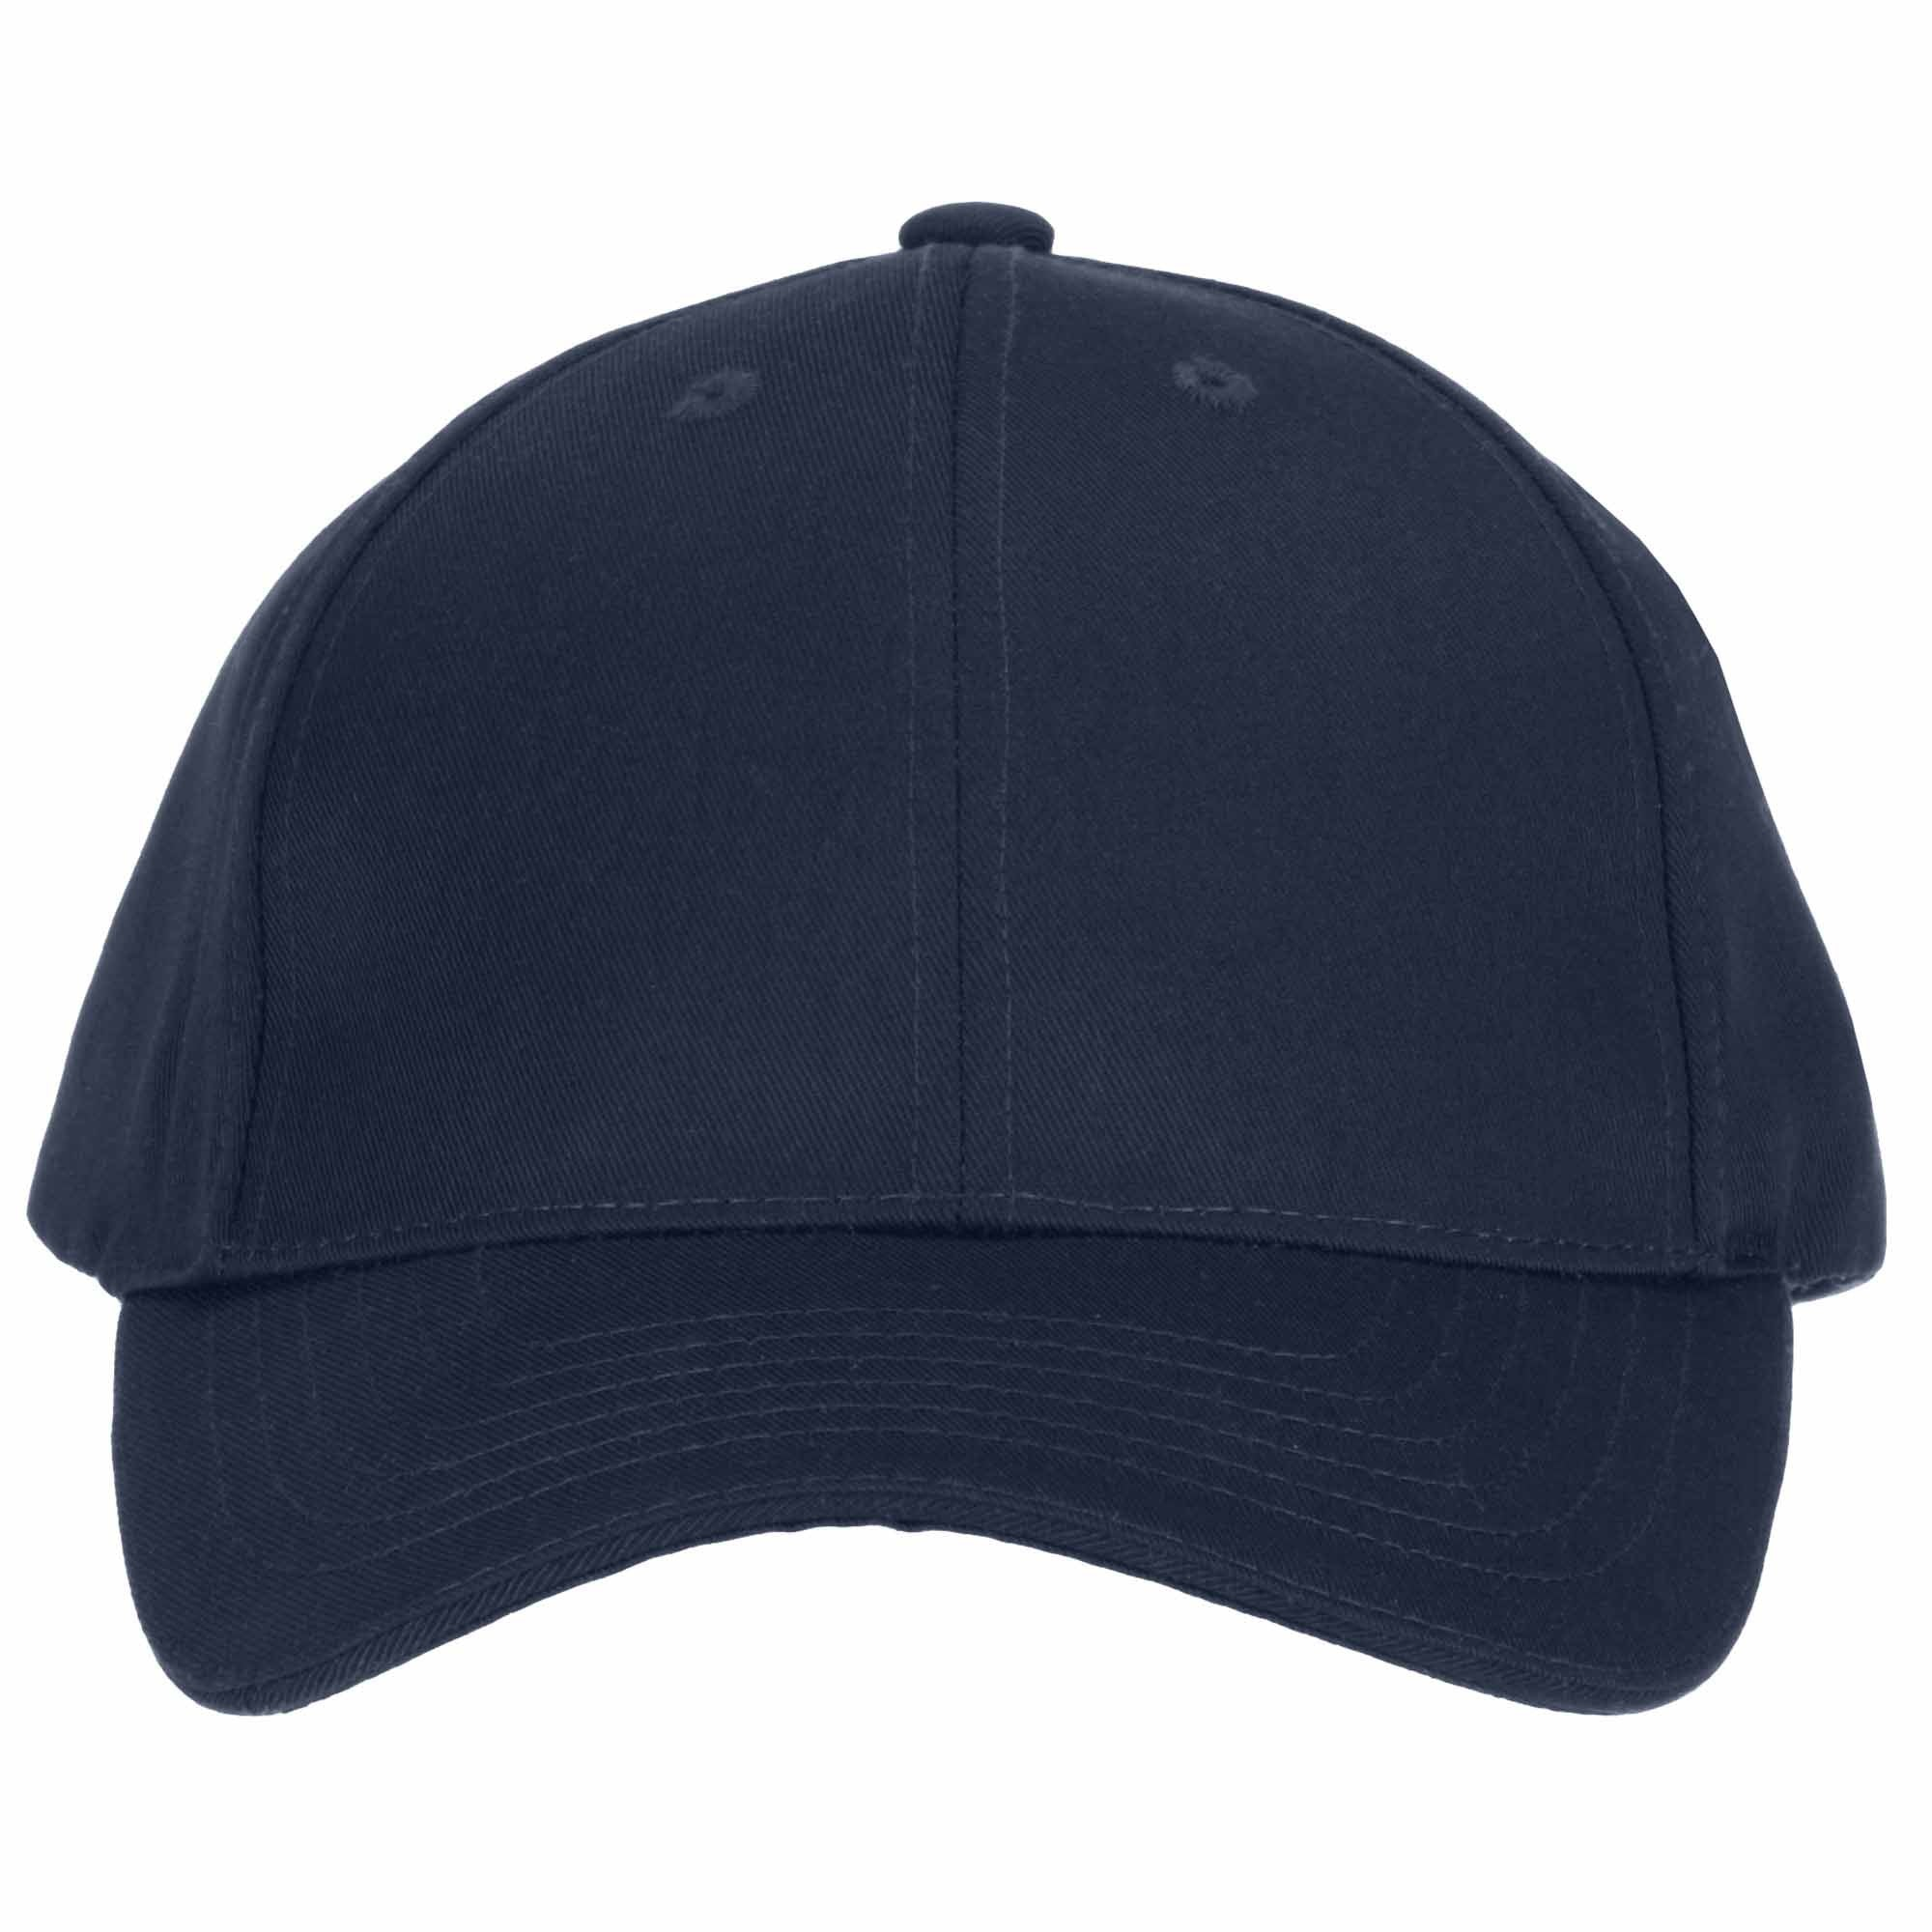 89260 Adjustable Uniform Hat